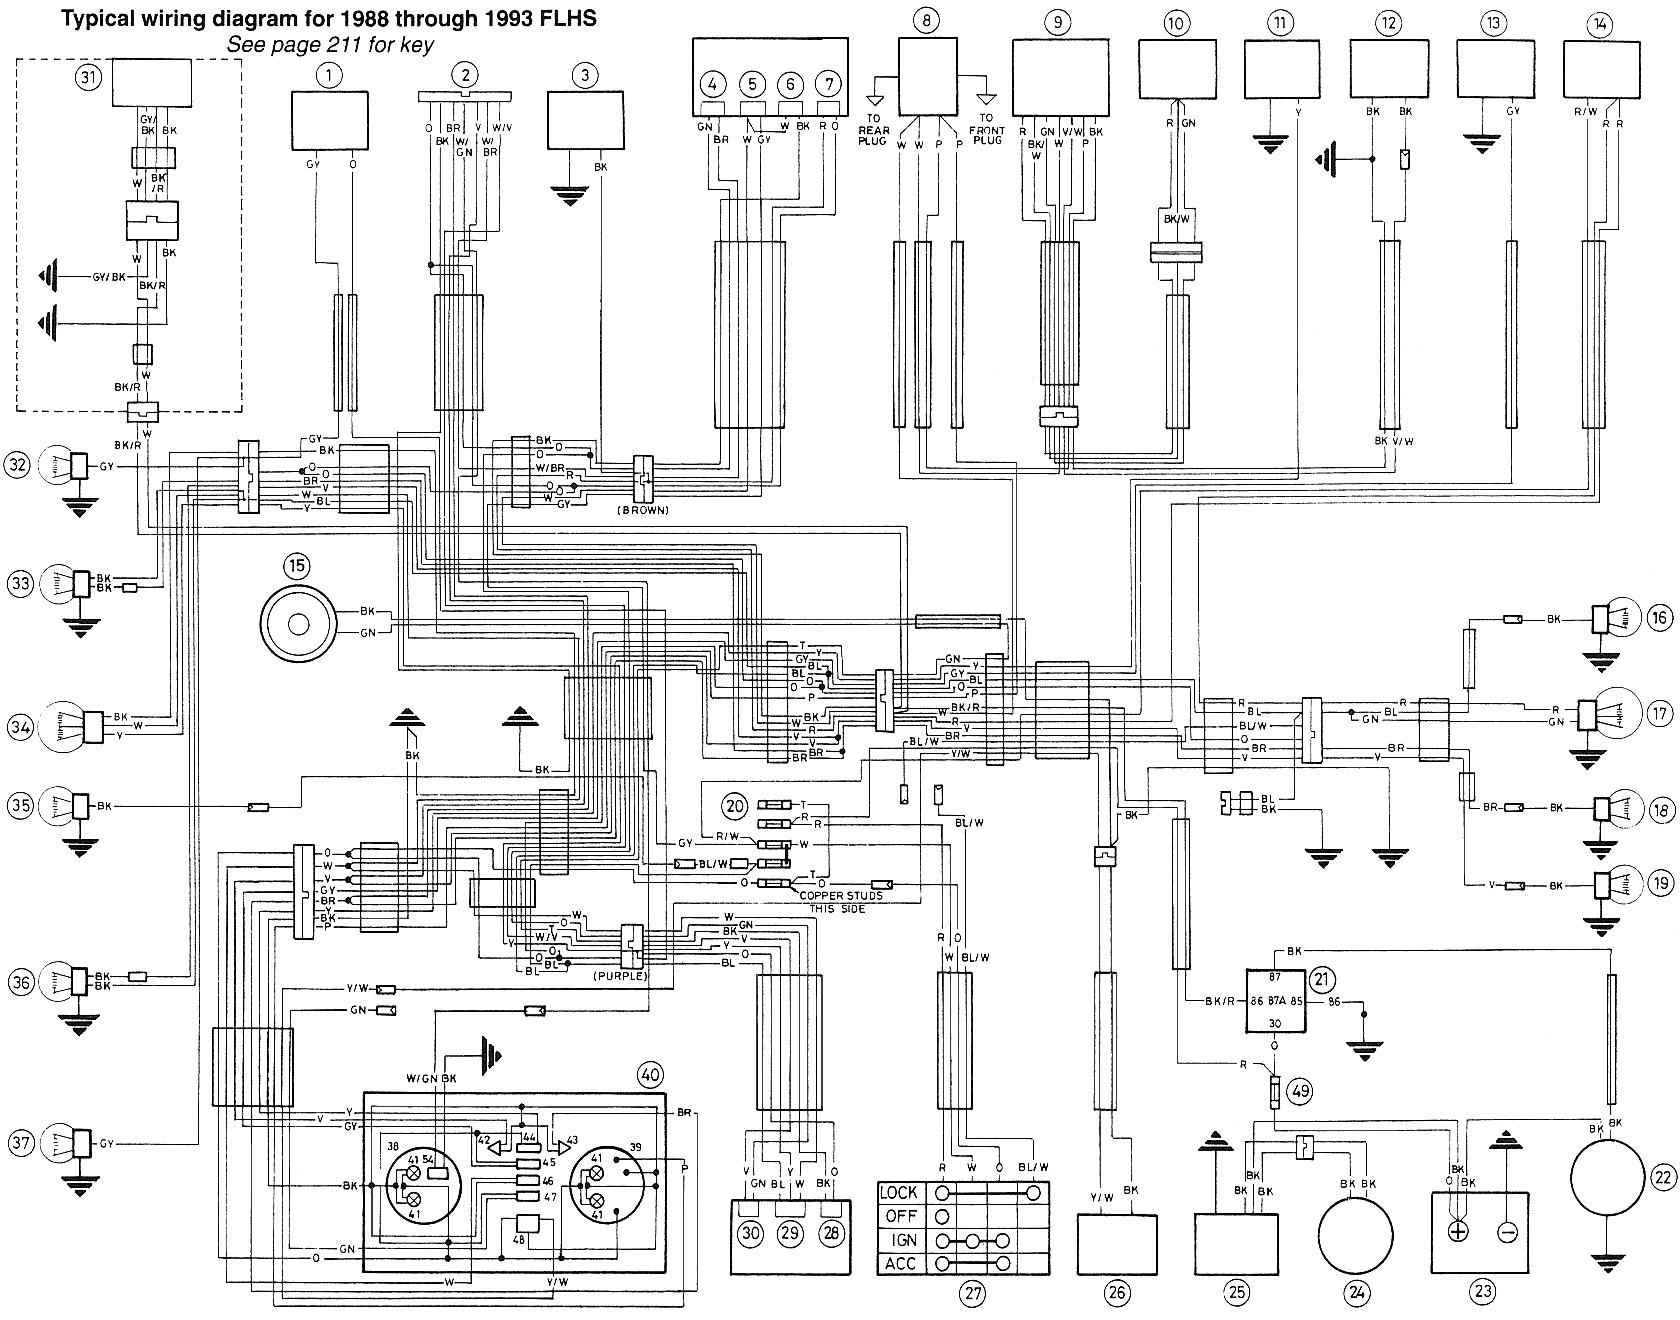 98 Flstc Harley Davidson Motorcycle Diagrams | Wiring Diagram on